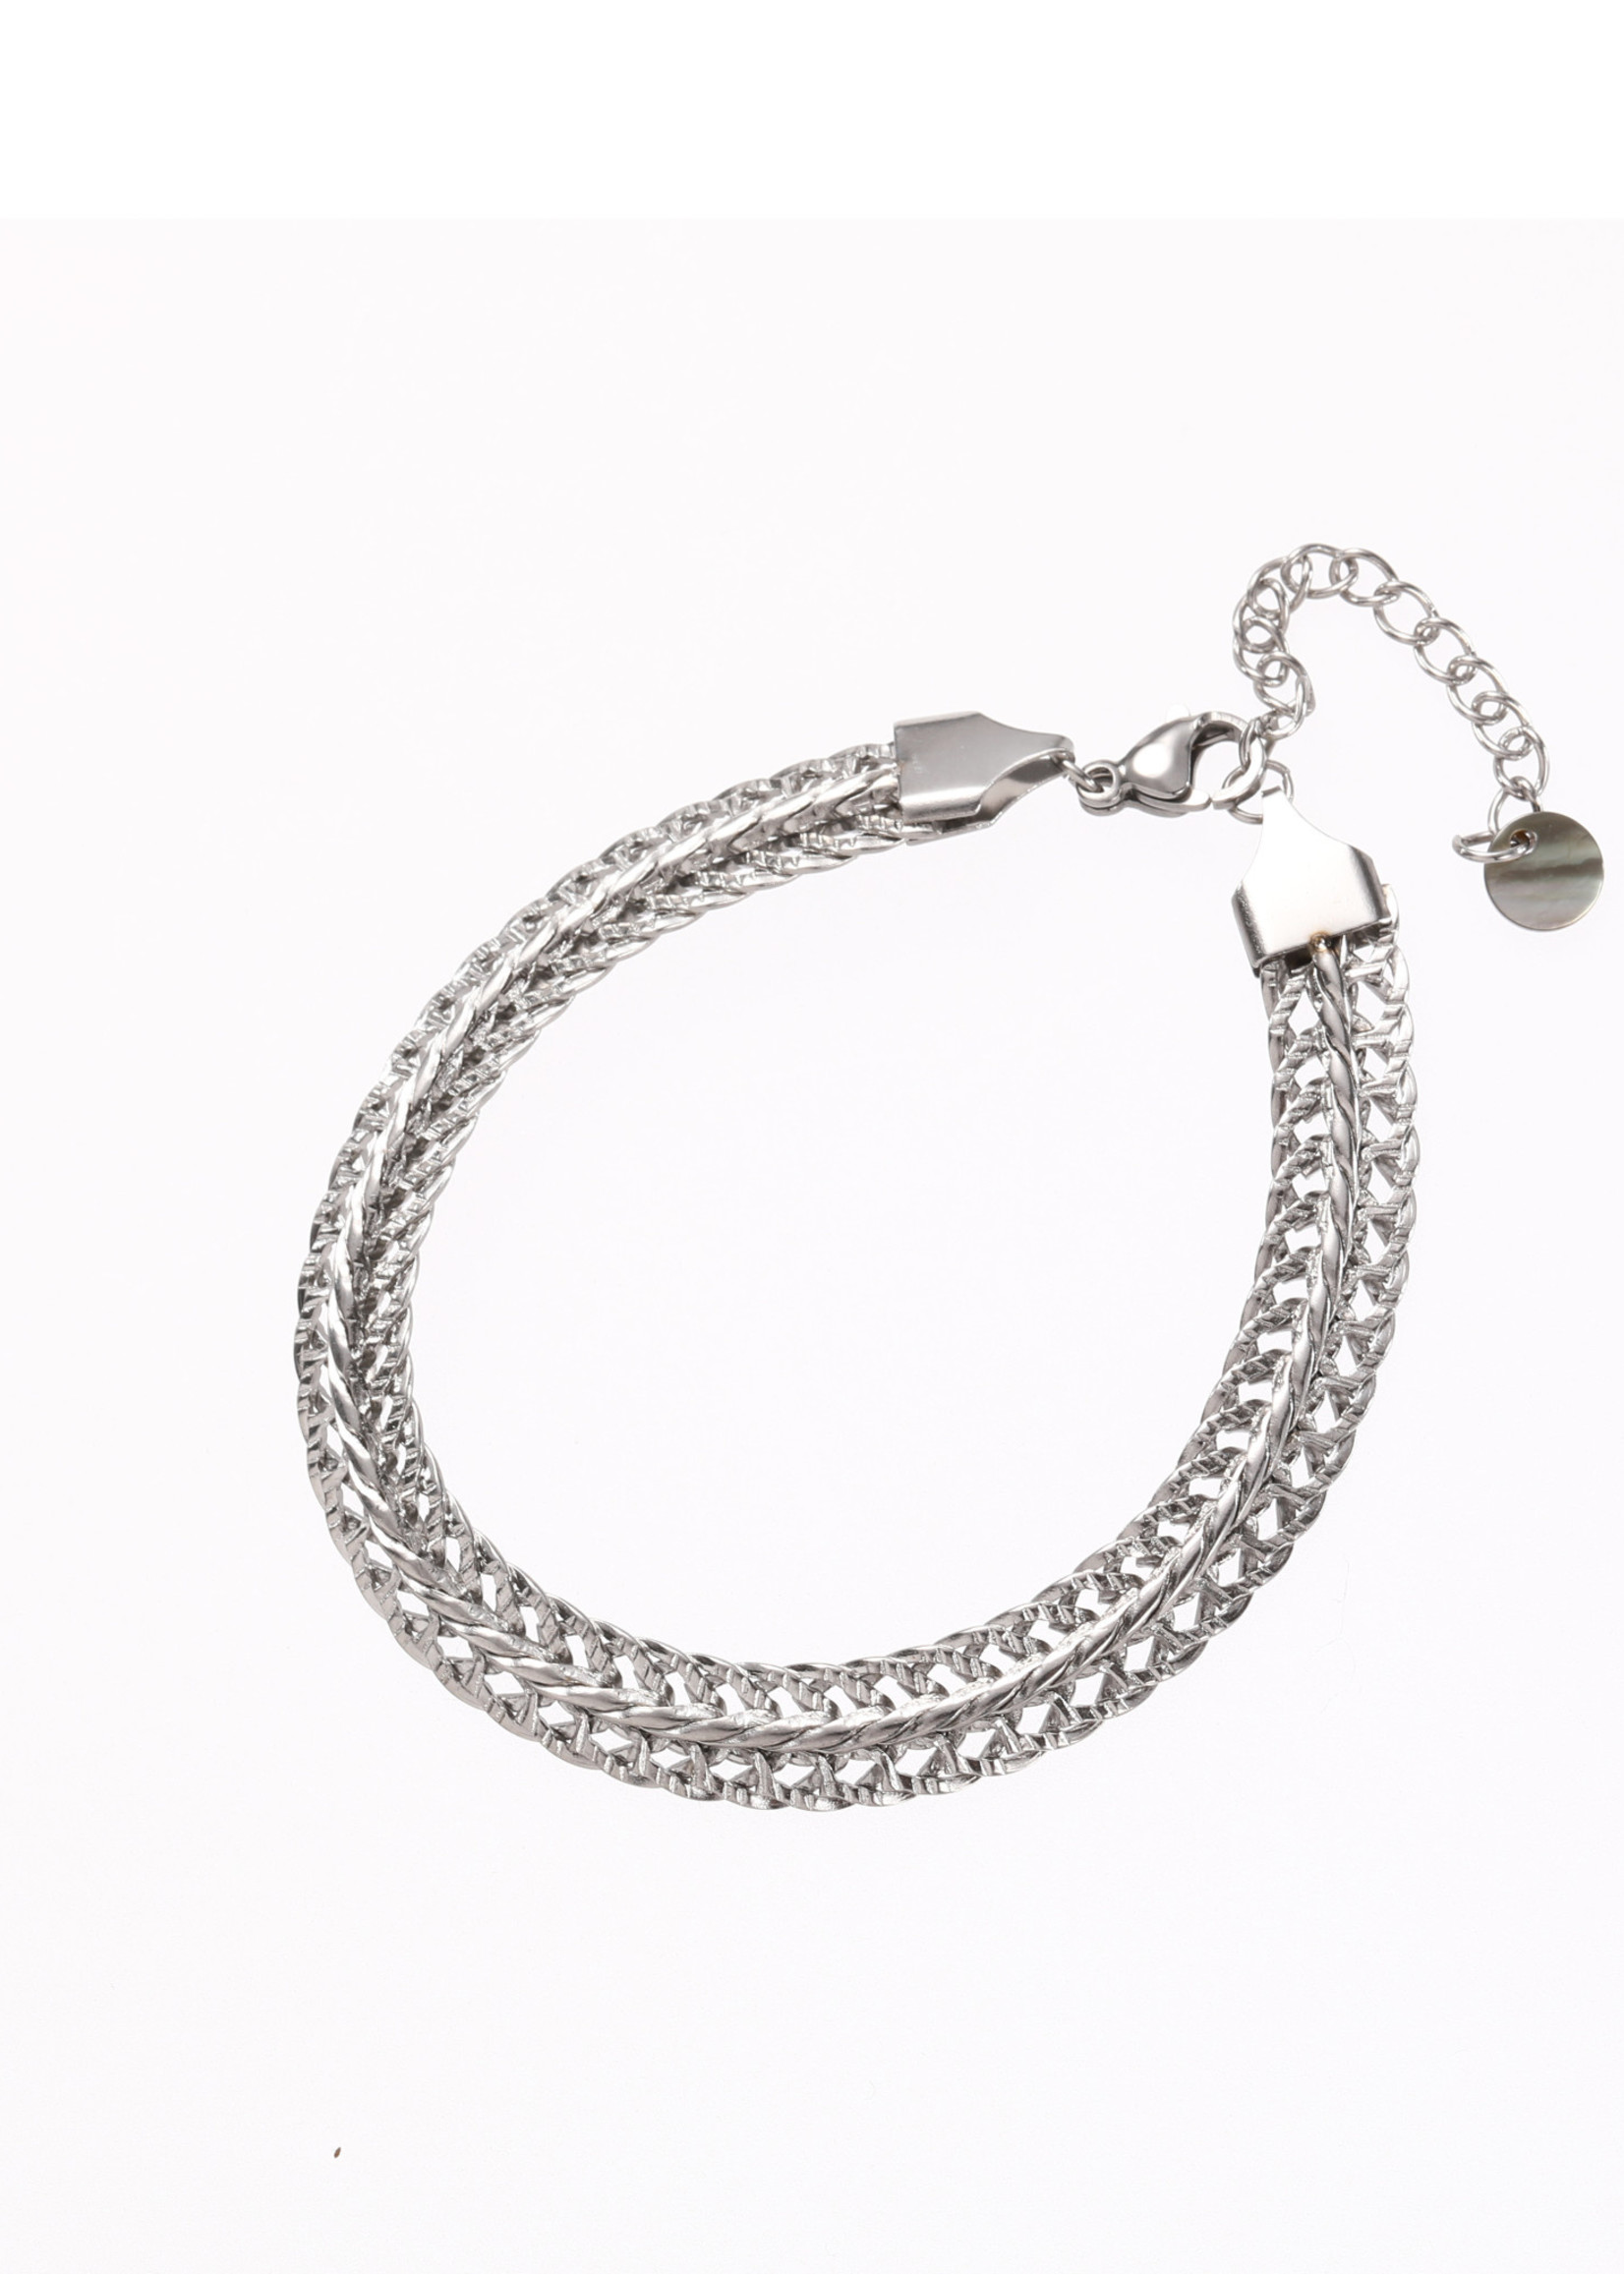 Armband zilver breed B1859-1